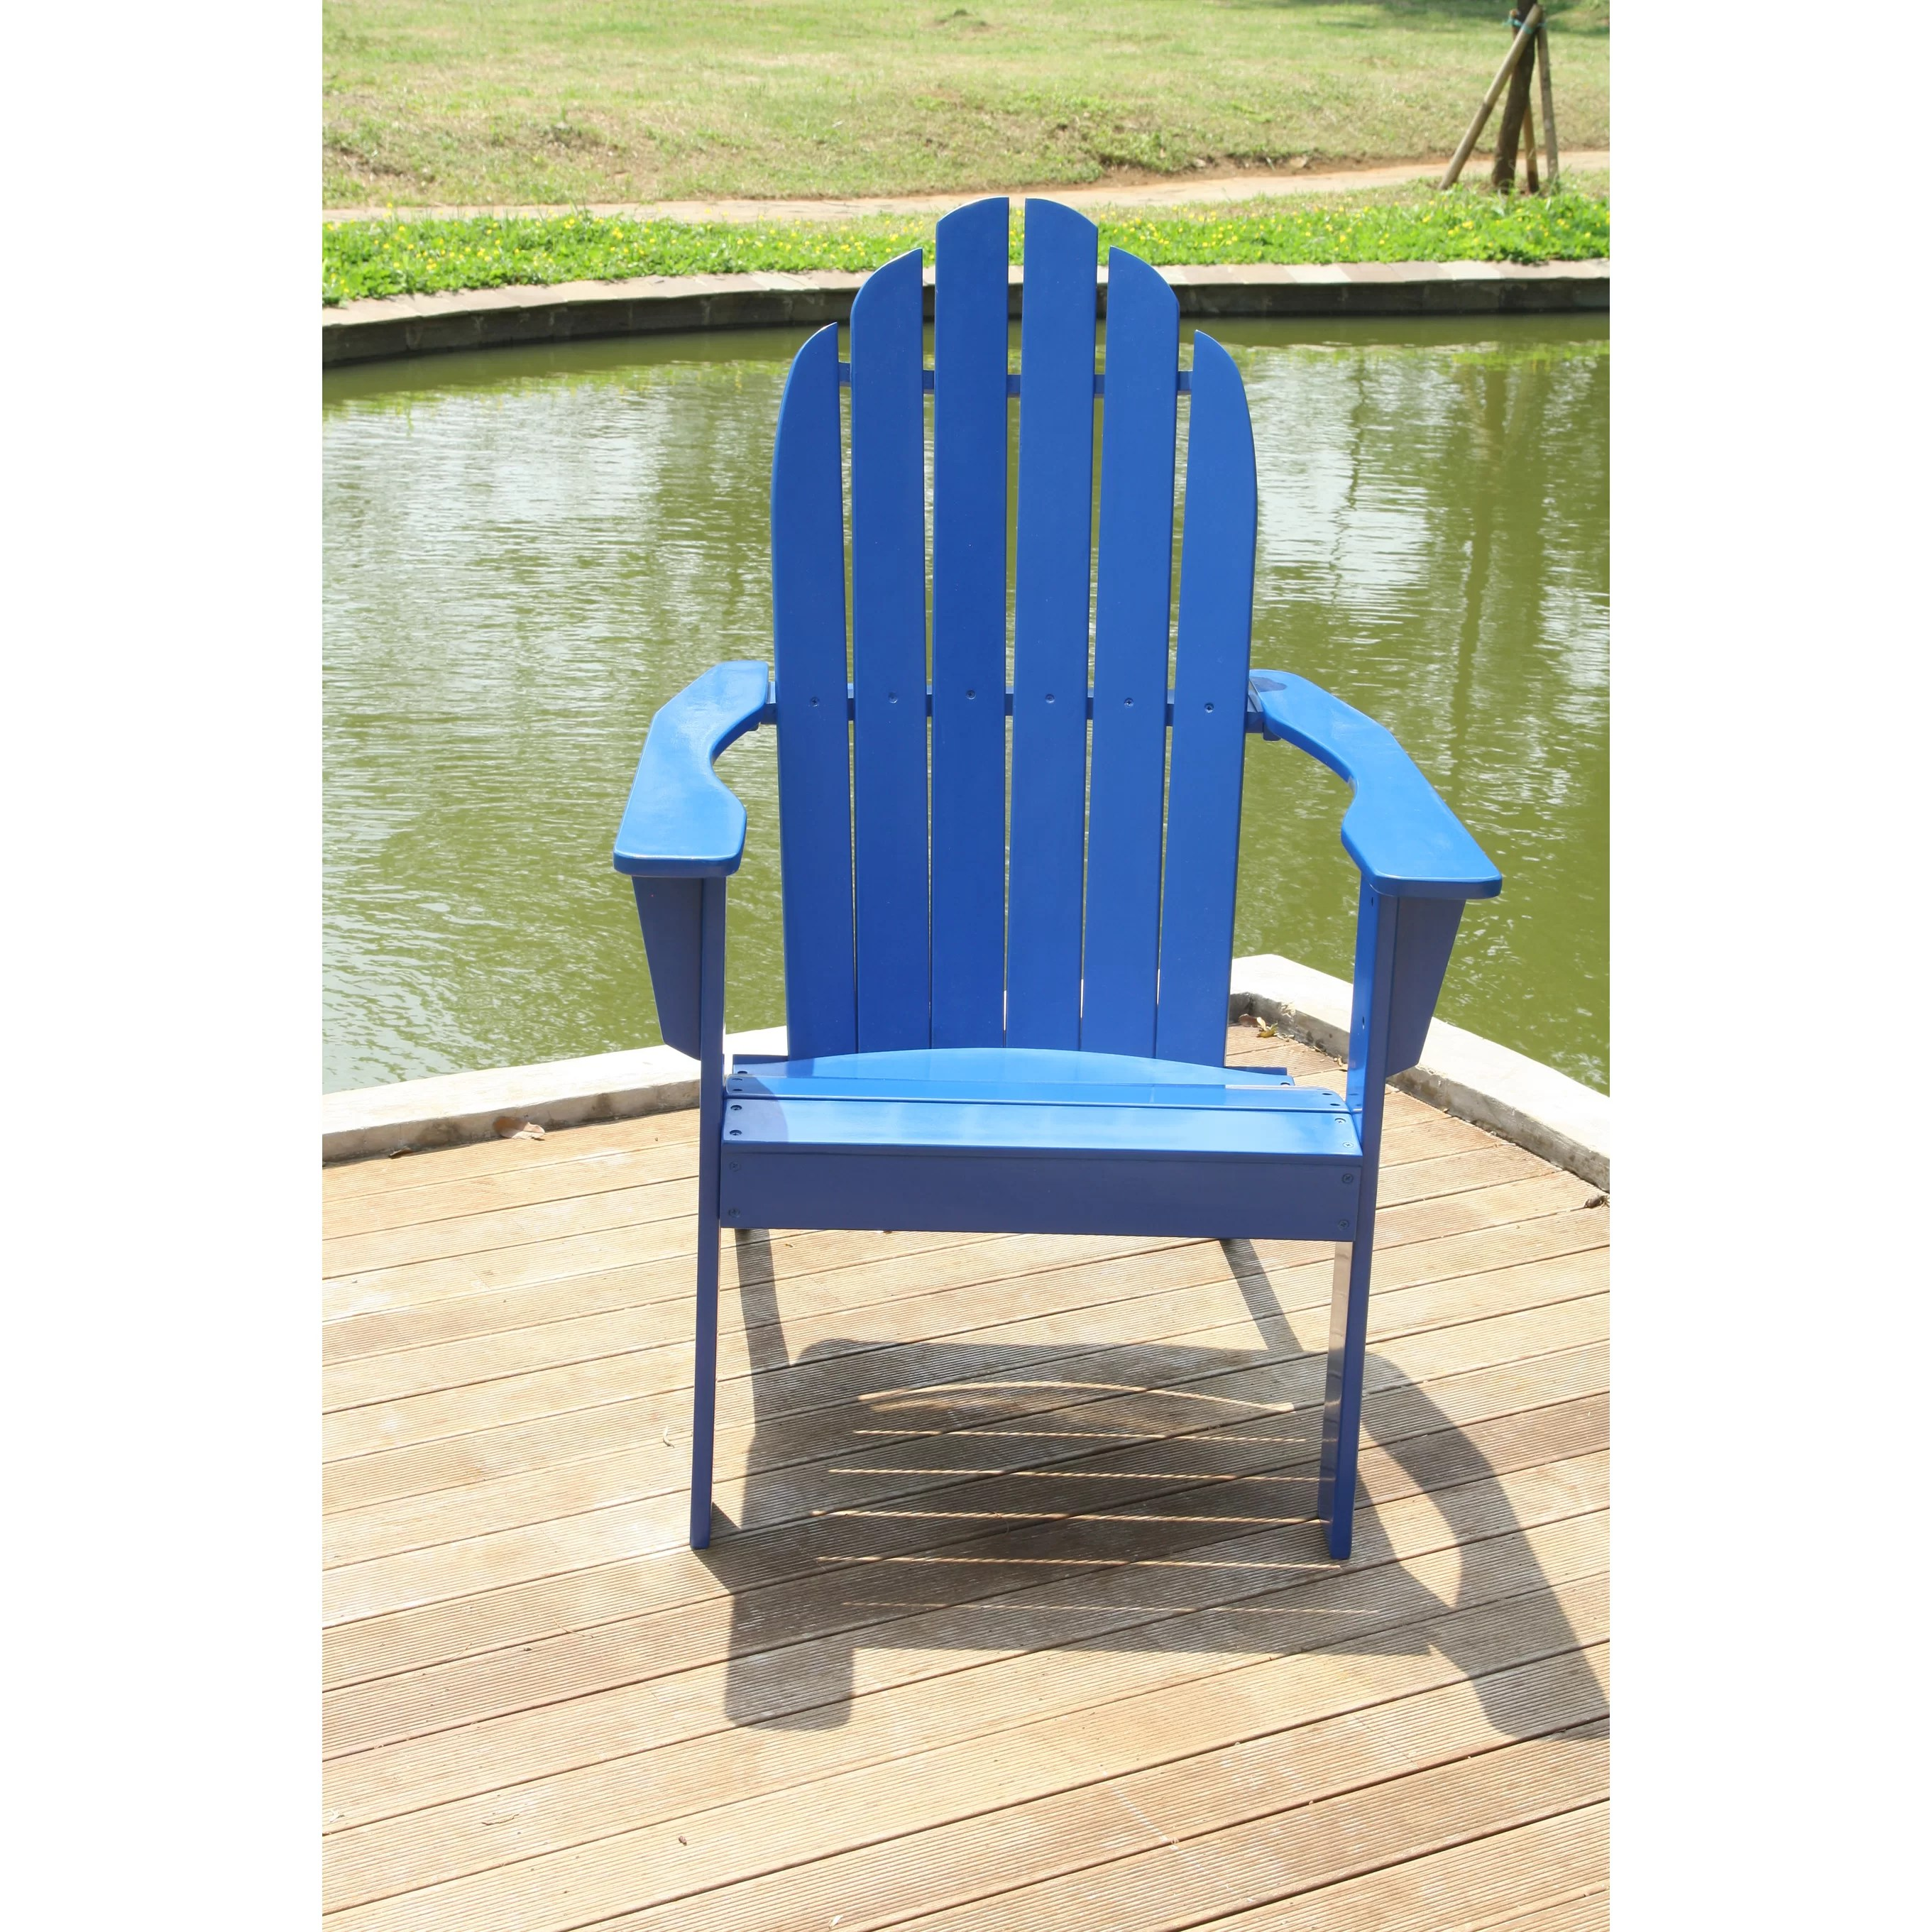 adirondack chair reviews red heel shoe fullrich seabrook and wayfair